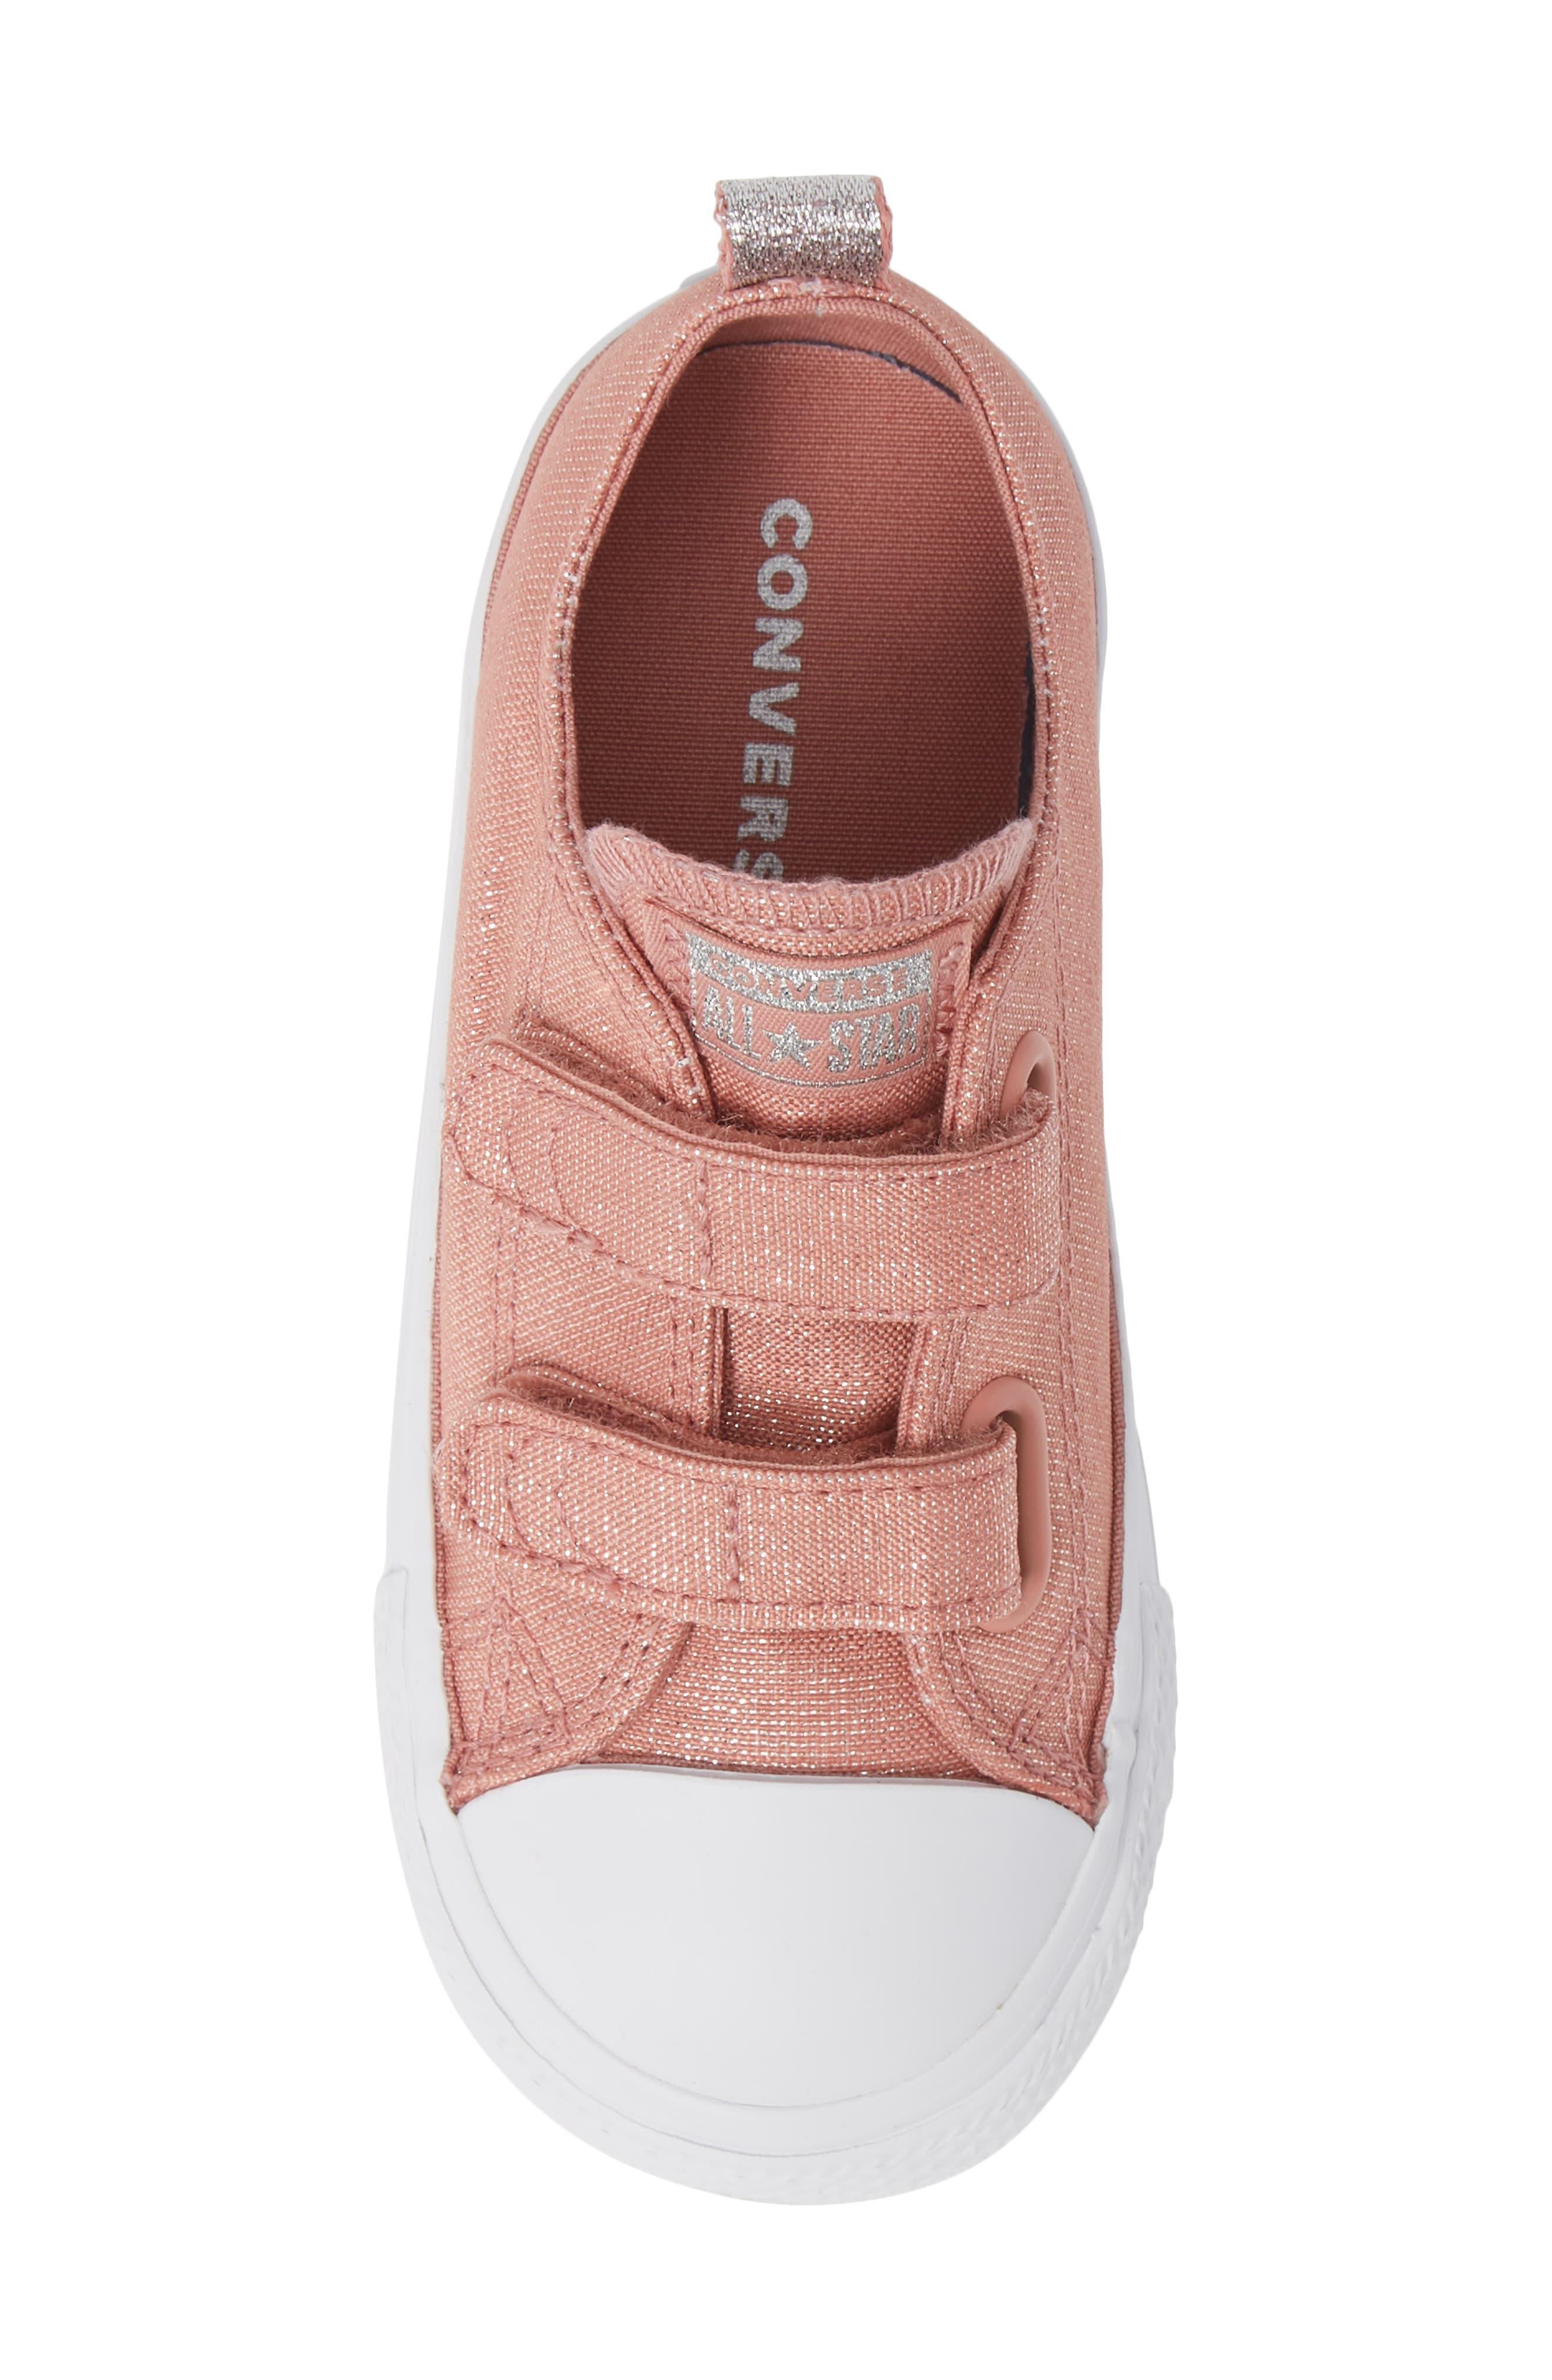 All Star<sup>®</sup> Fairy Dust Sneaker,                             Alternate thumbnail 5, color,                             RUST PINK